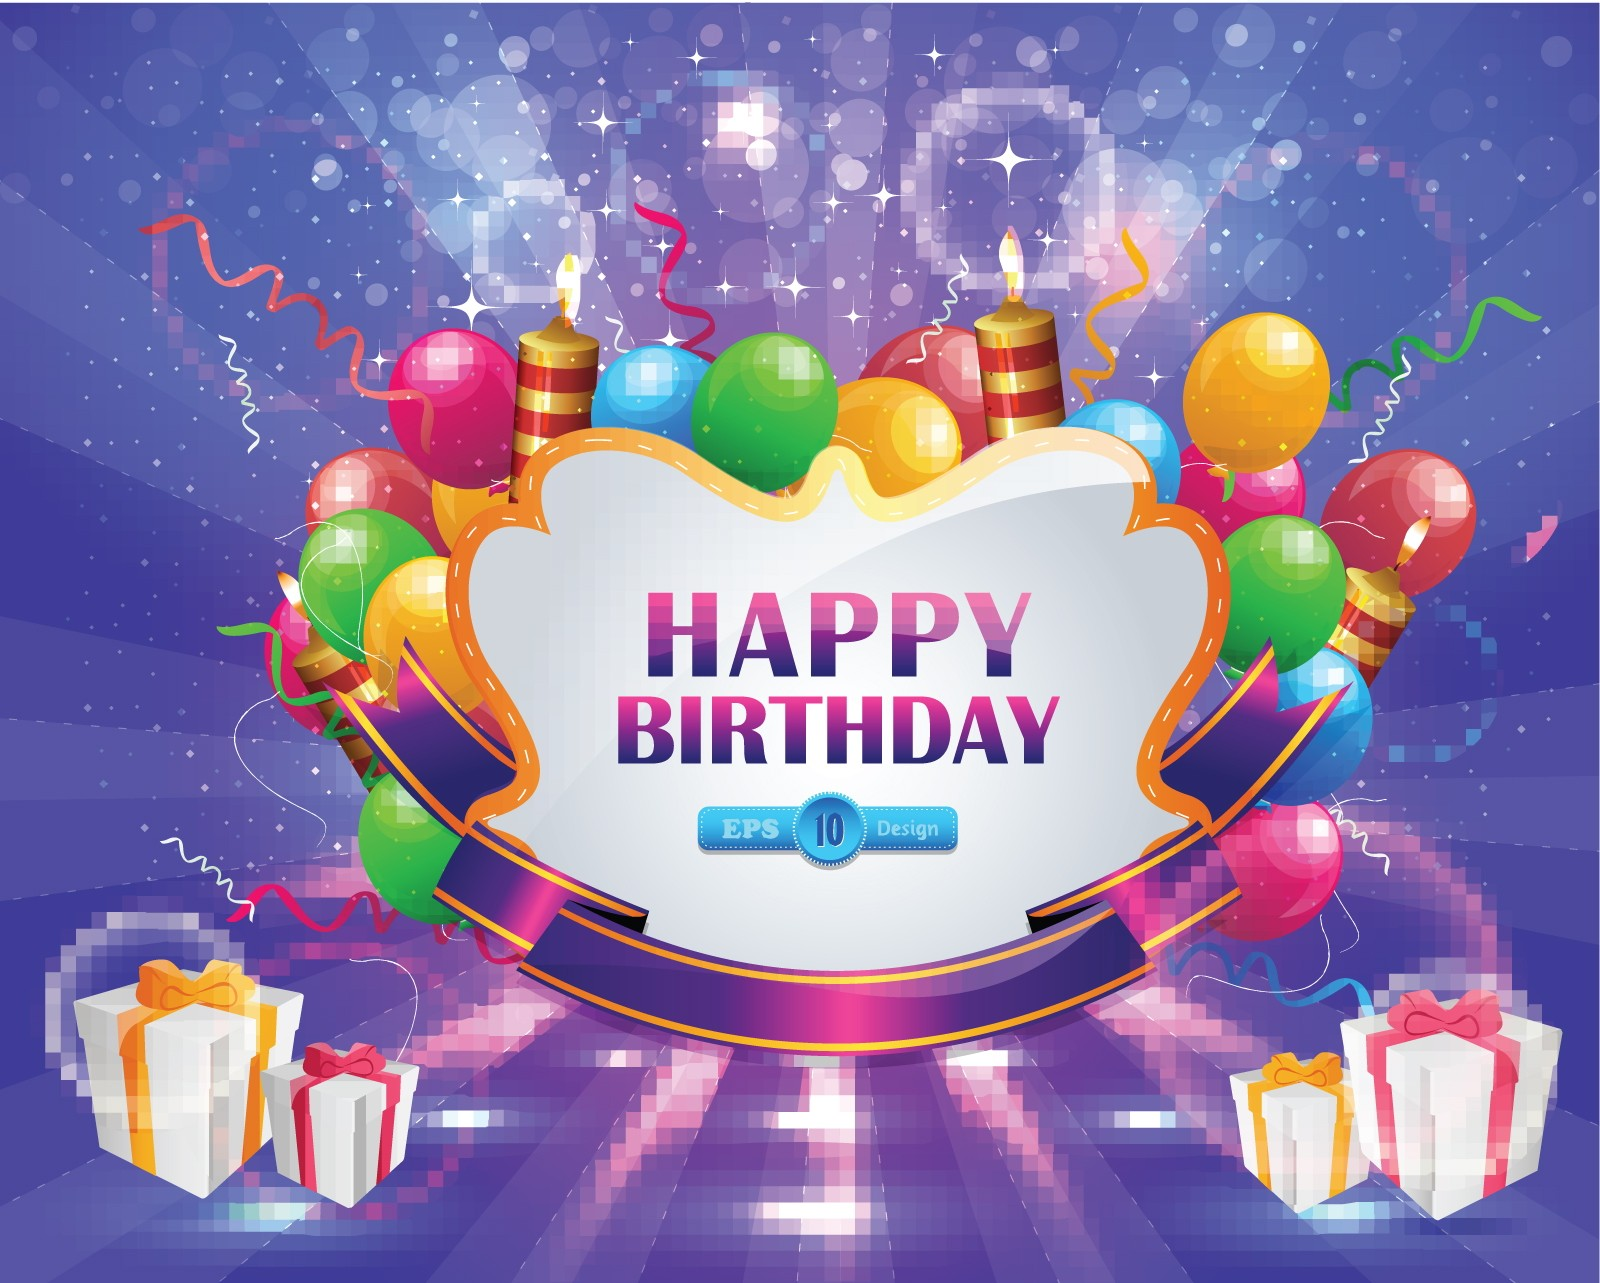 birthday card design with photo ; birthday-cards-design-rectangle-landscape-purple-balloon-and-gift-picture-the-24-best-latest-happy-birthday-greeting-cards-funny-and-cute